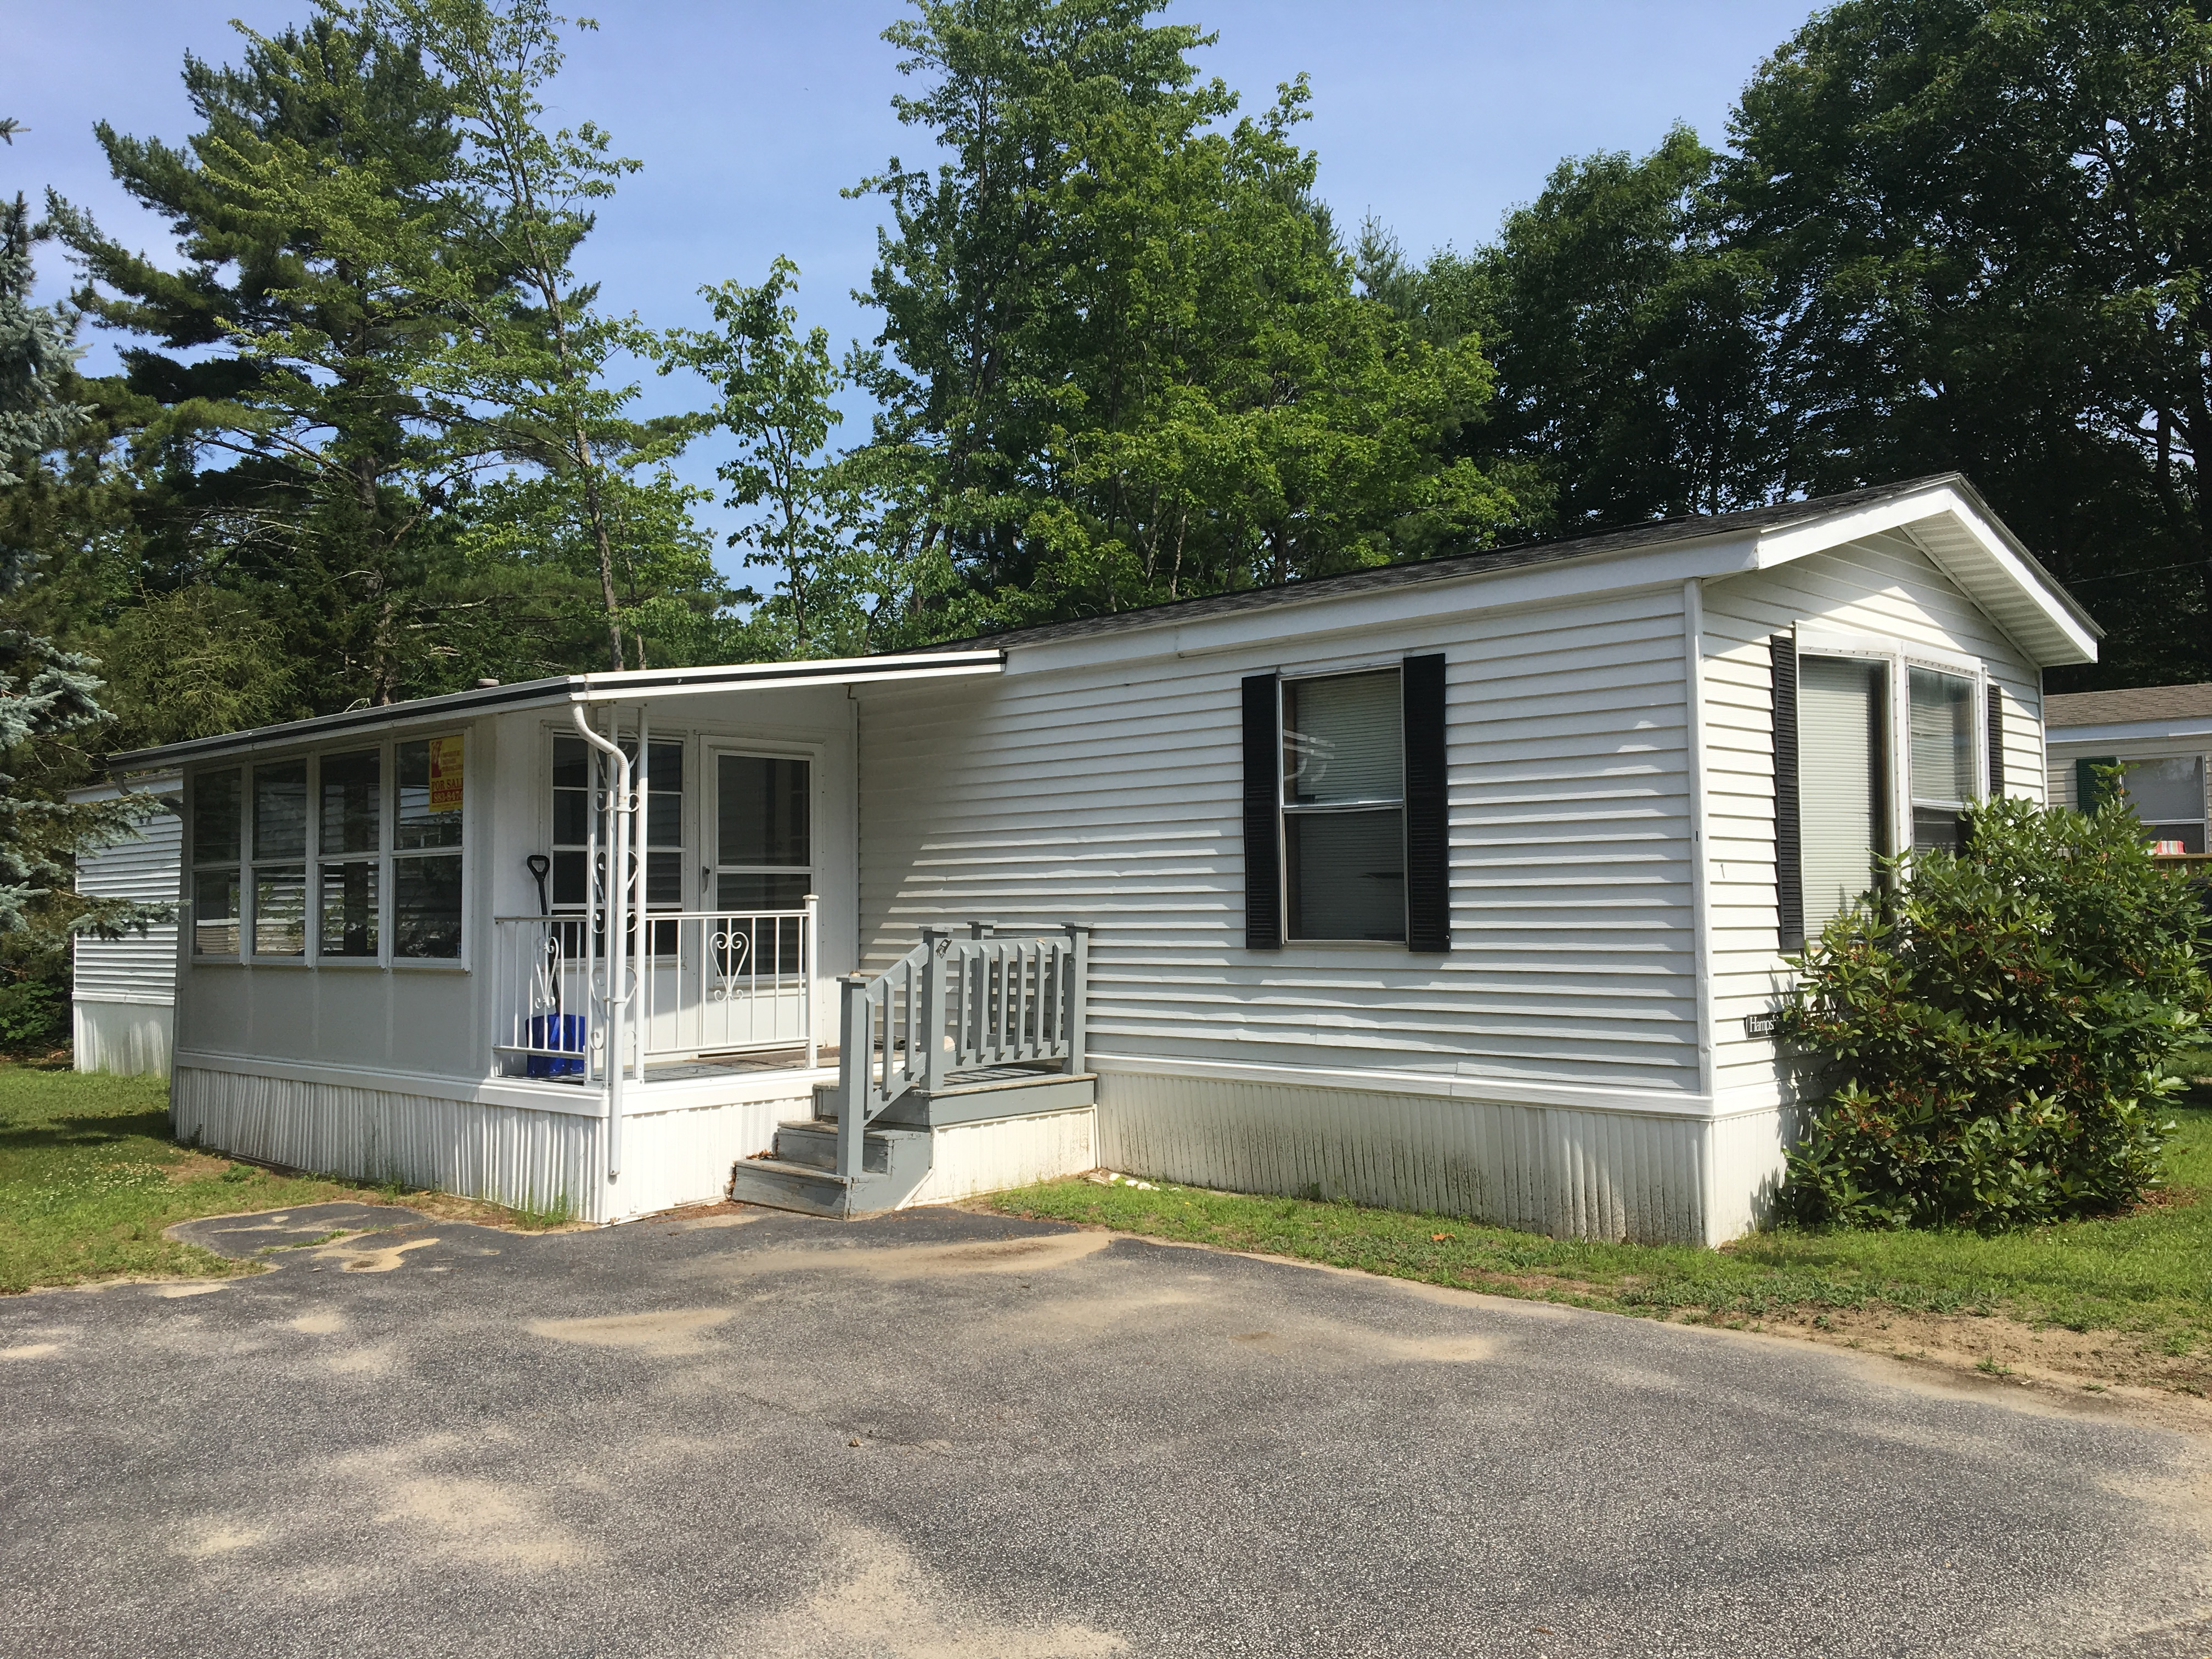 Maine Mobile Home For Sale at 1 Castle Rock Drive, Old Orchard Beach